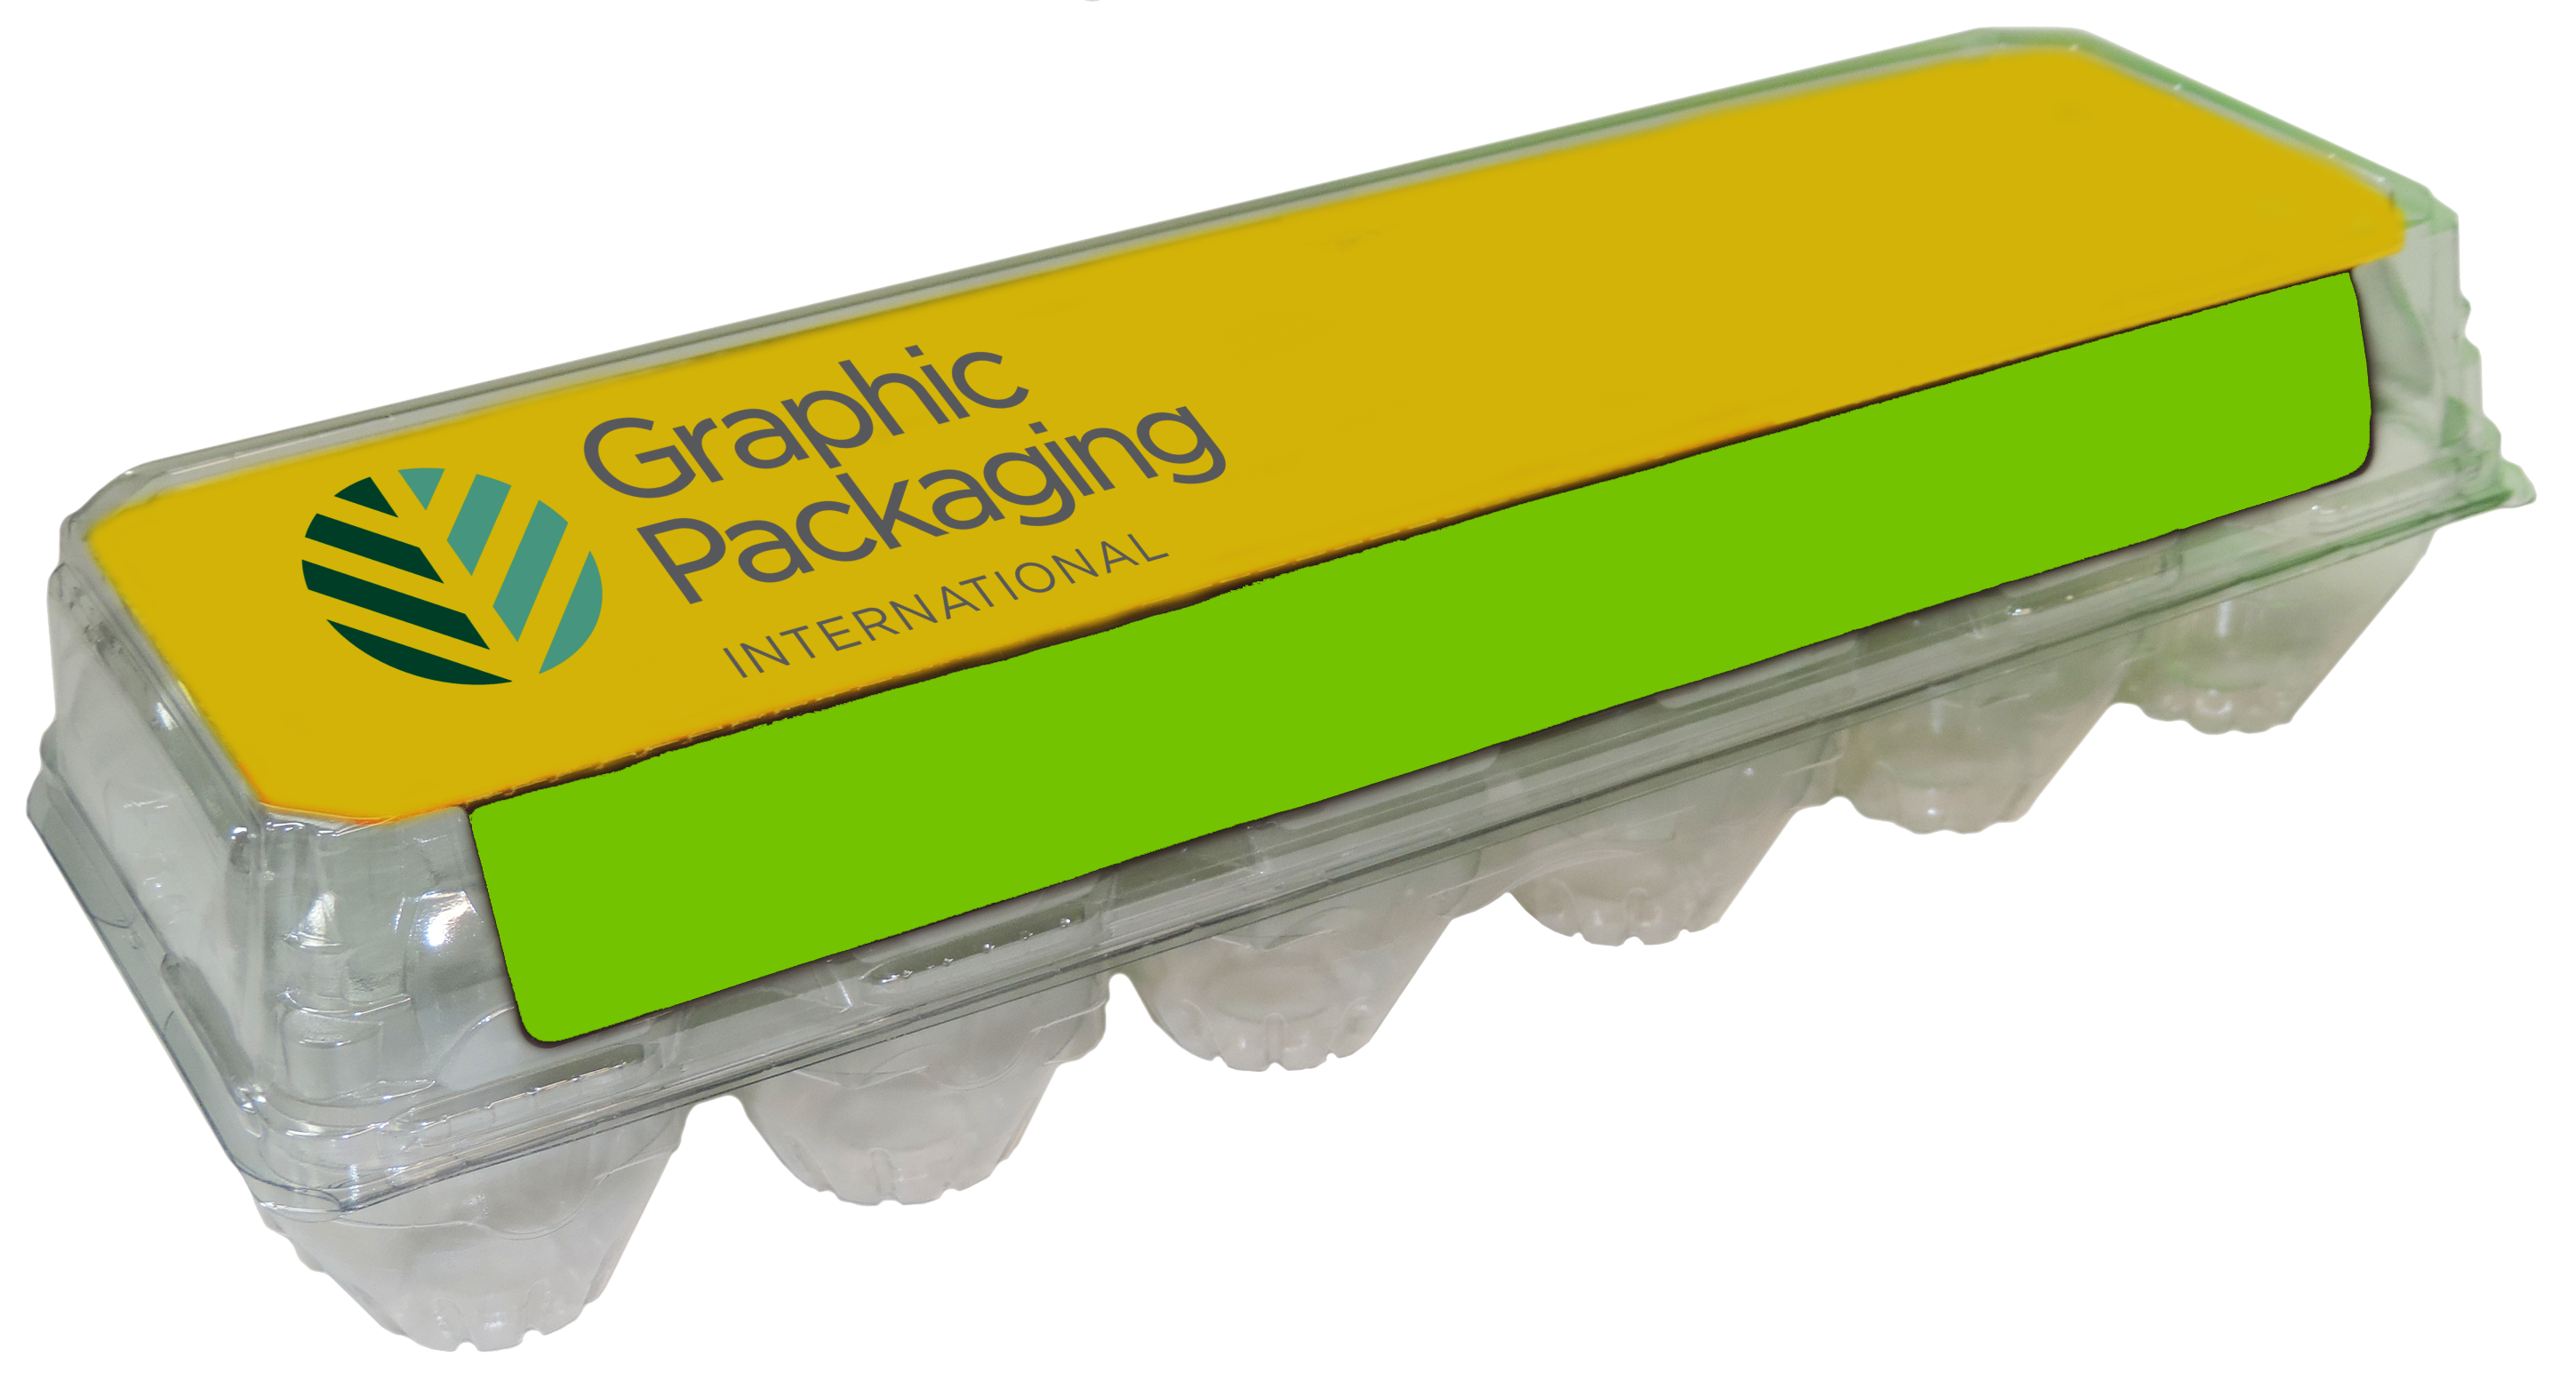 Egg carton packaging from Graphic Packaging International